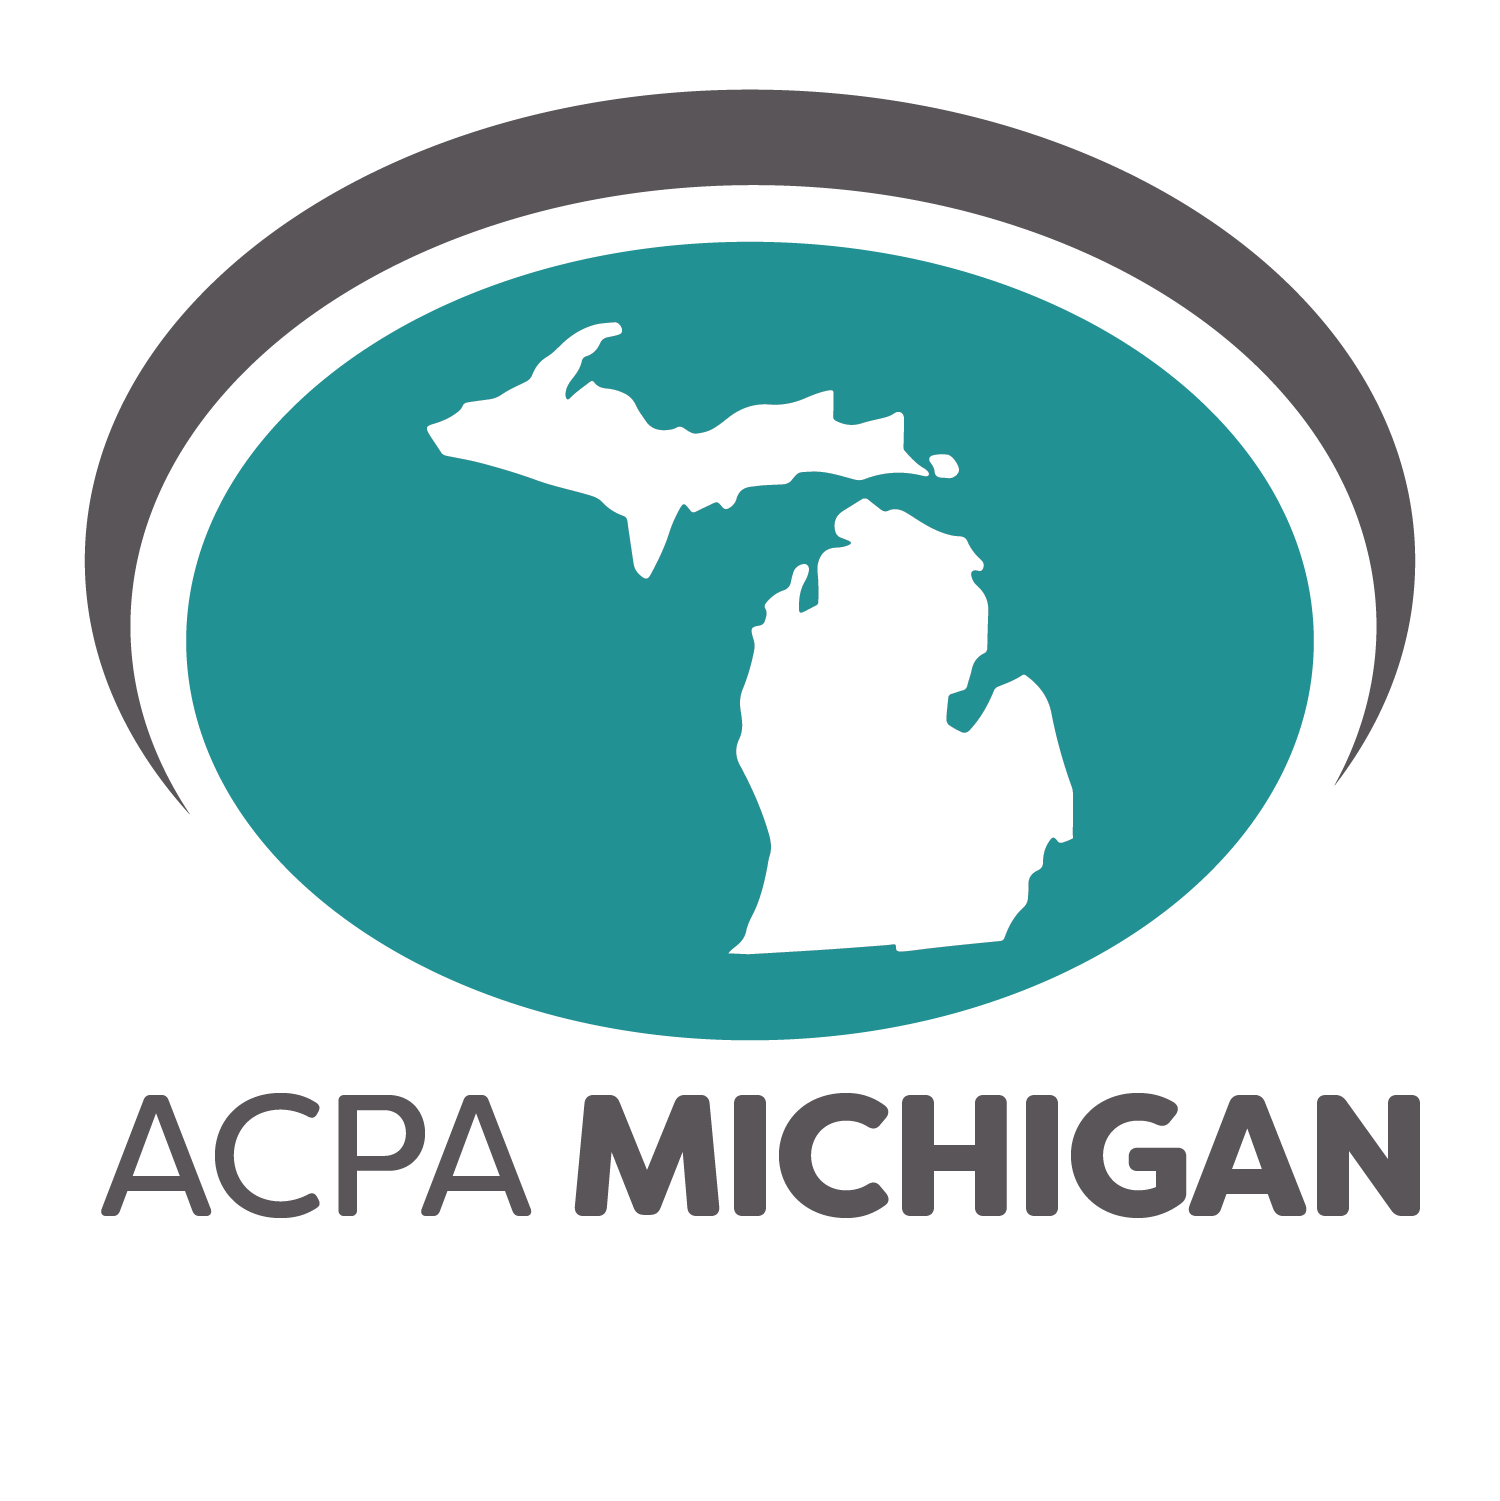 ACPA Michigan logo featuring the state outline